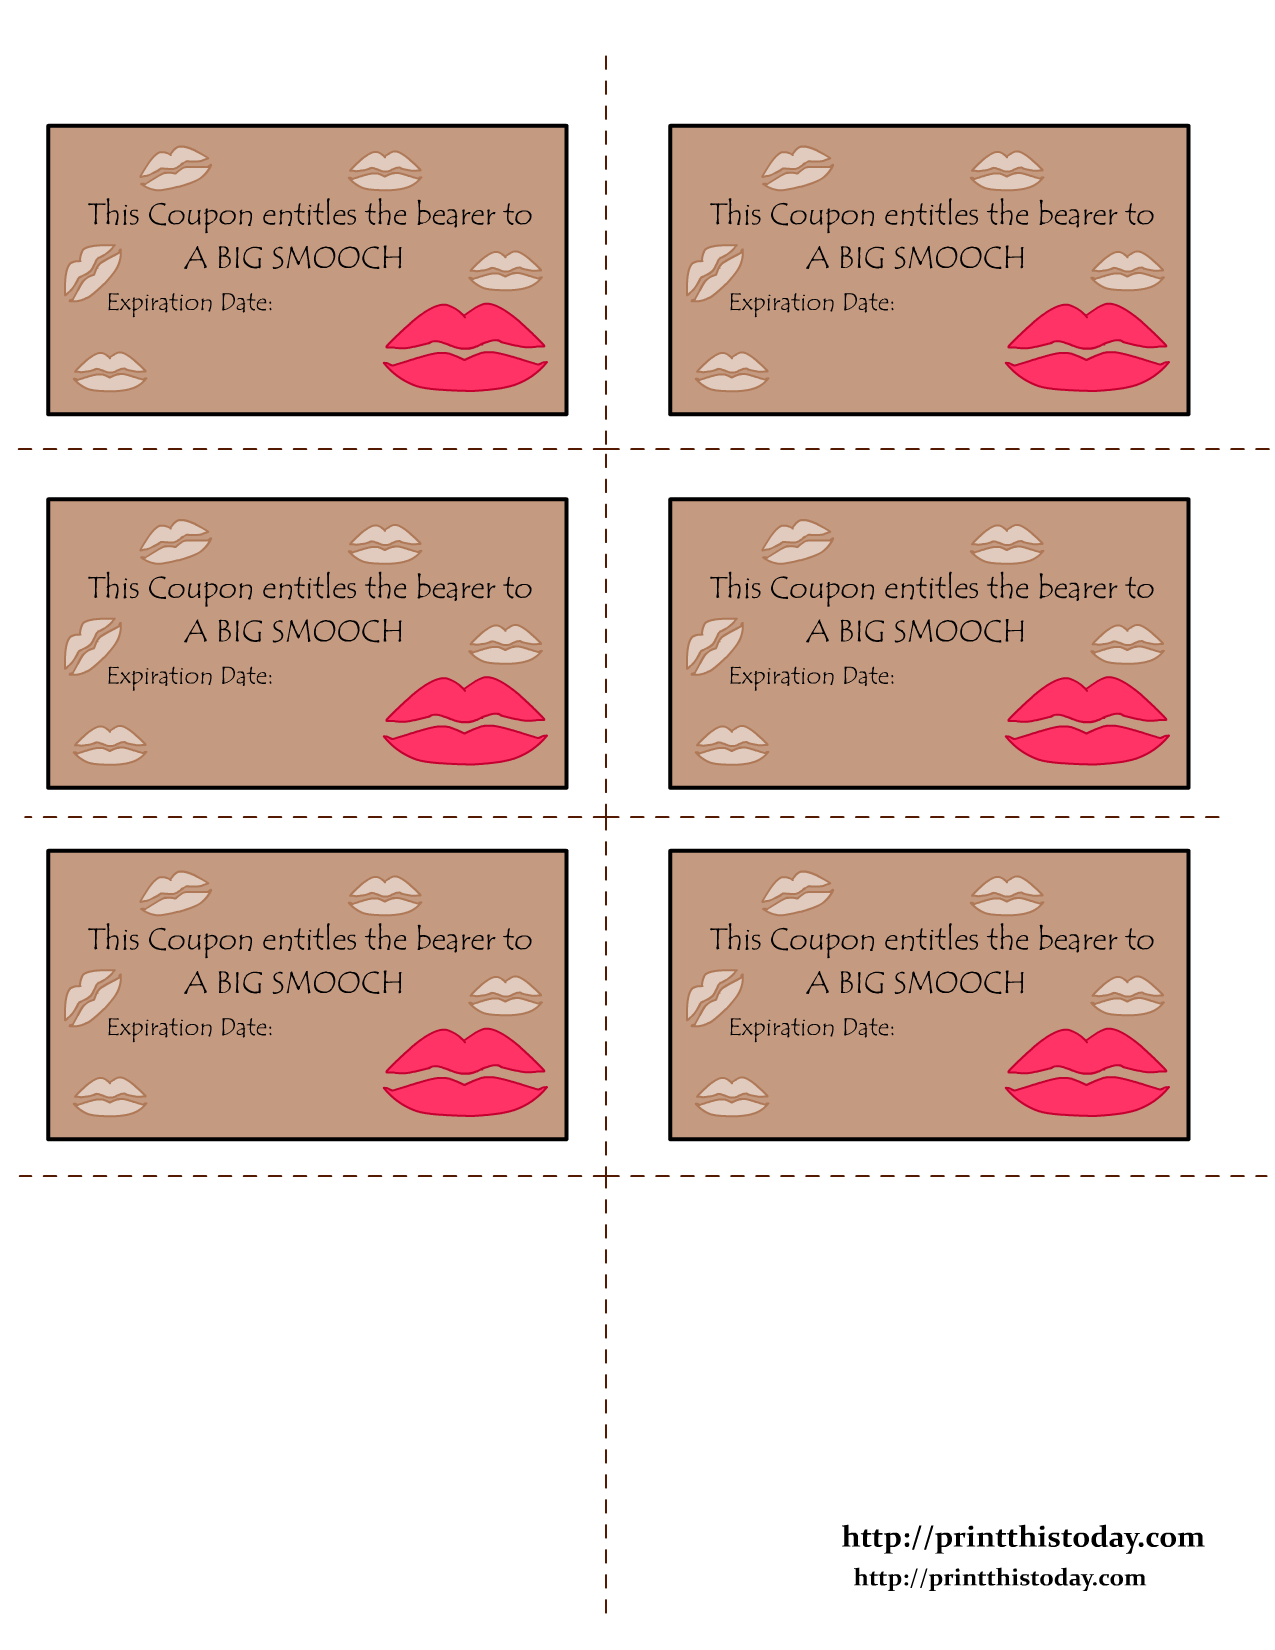 Free Printable Love Coupons - Free Printable Love Certificates For Him